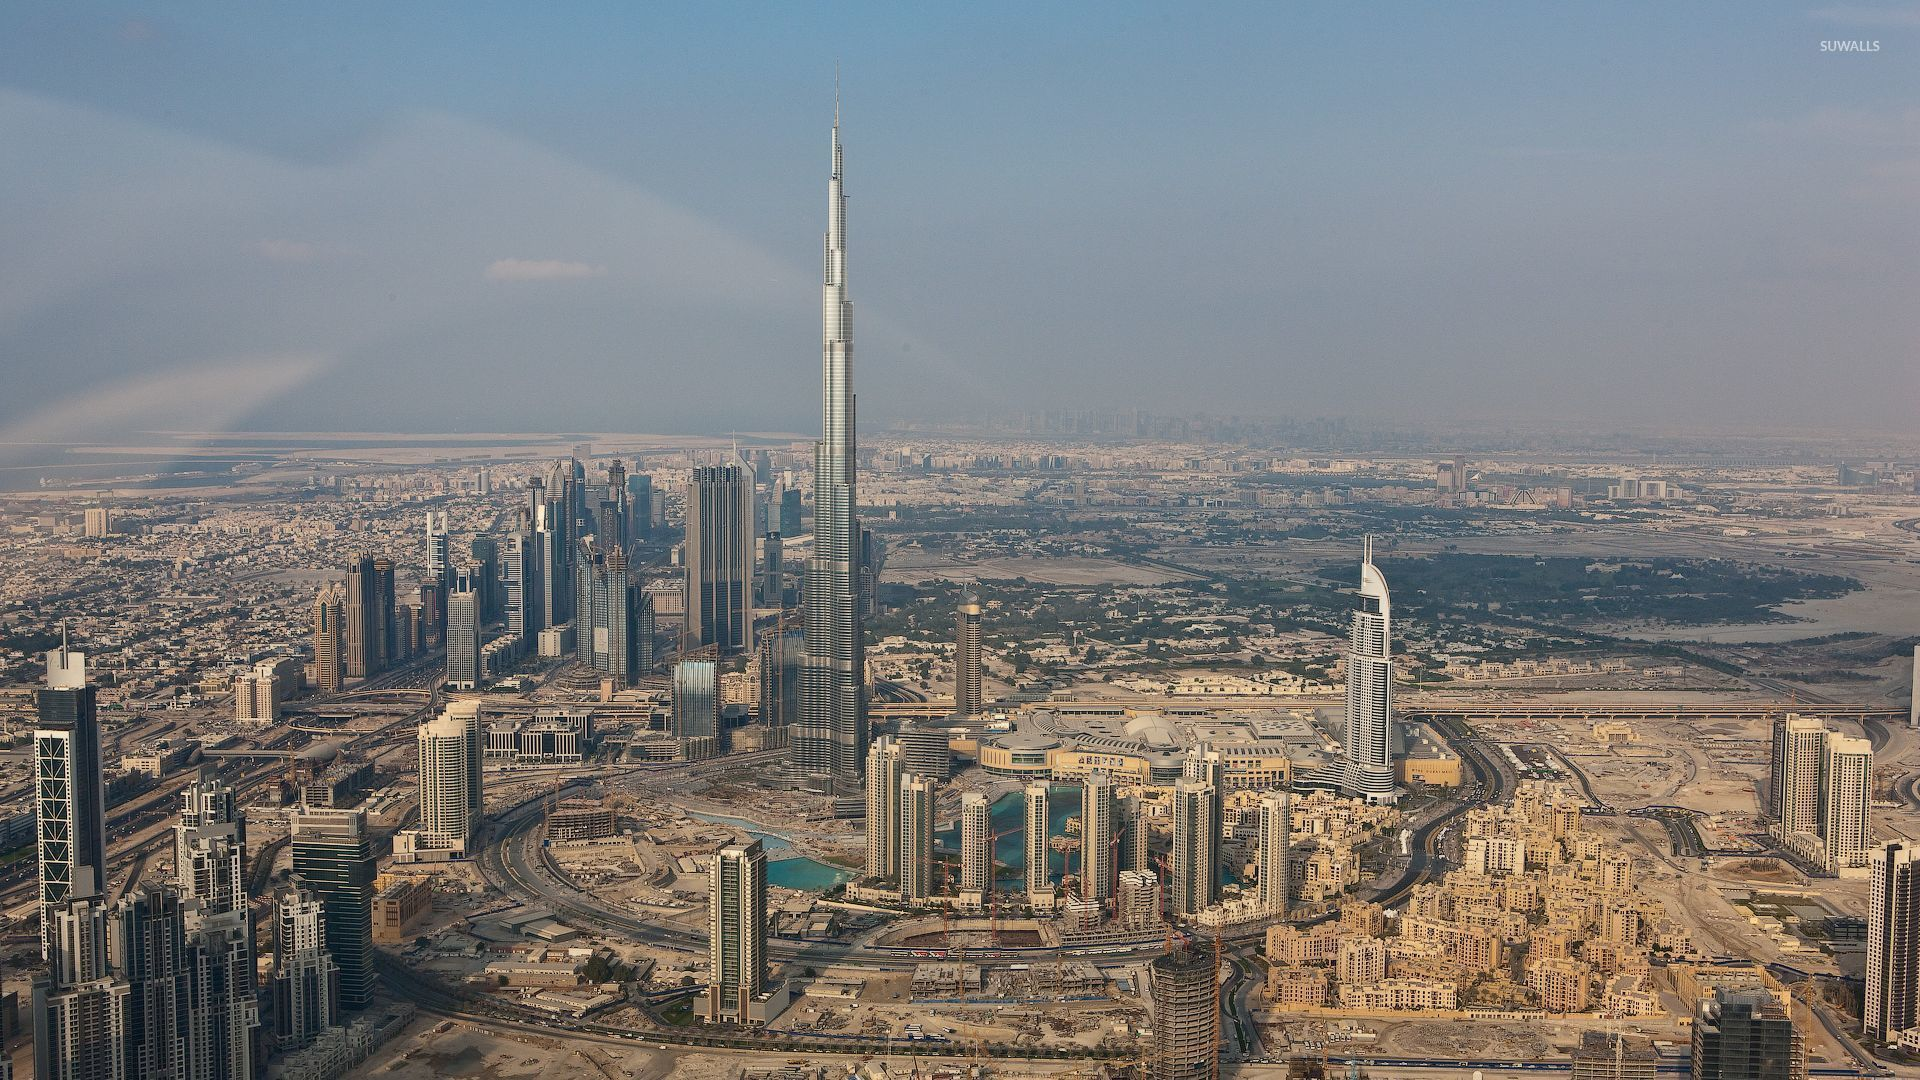 burj khalifa wallpaper 1920x1080 - photo #21